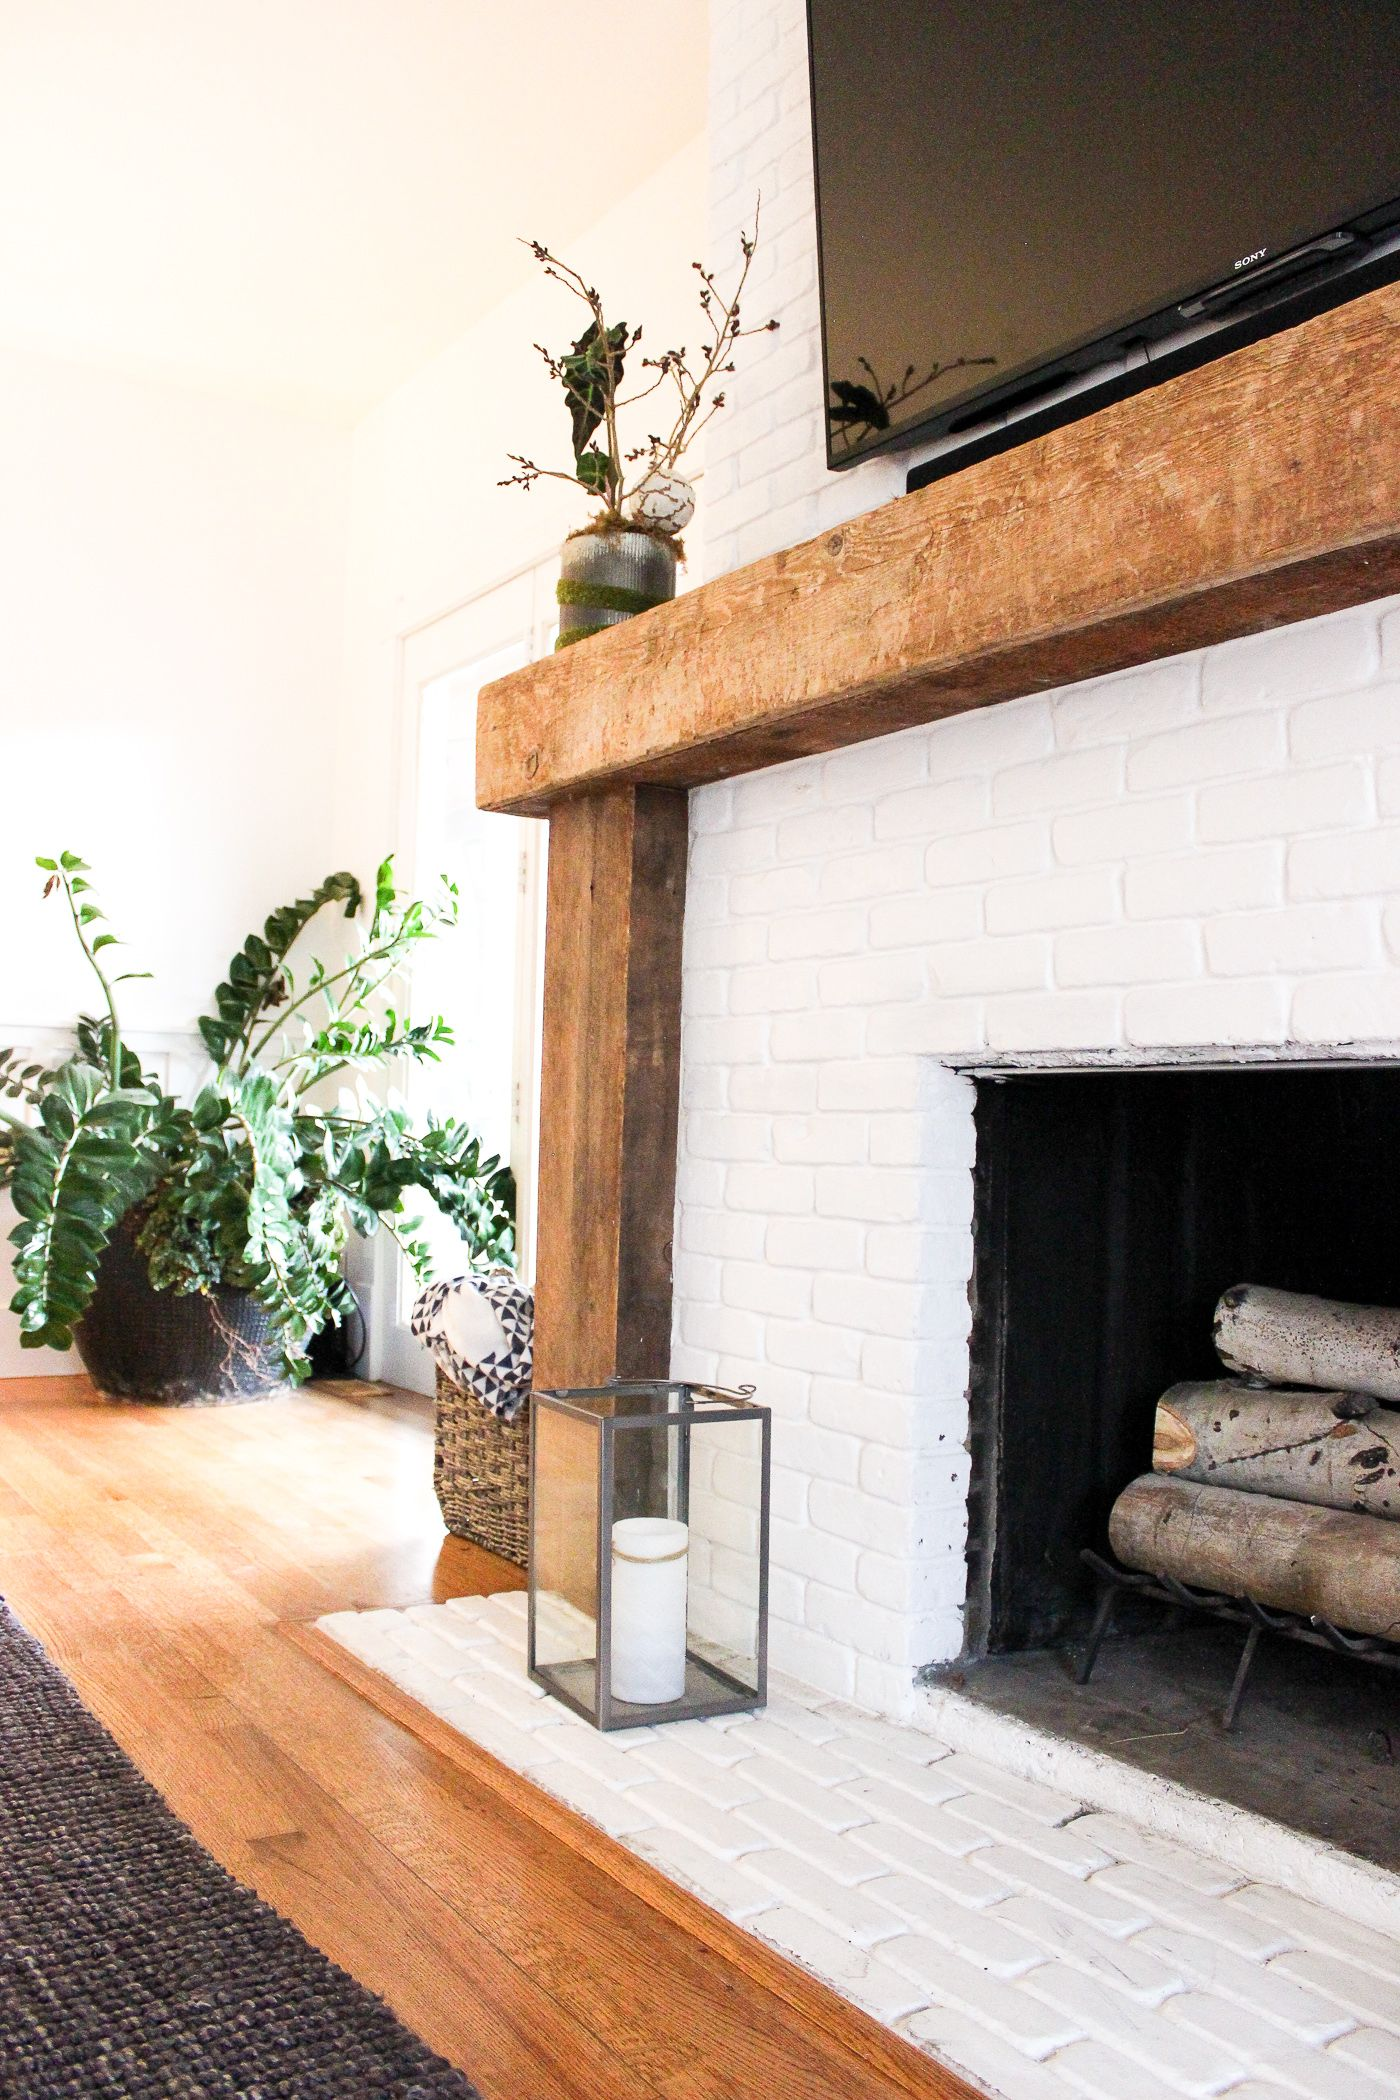 Eclectic Minimalism in Park City (Part 1) #whitebrickfireplace